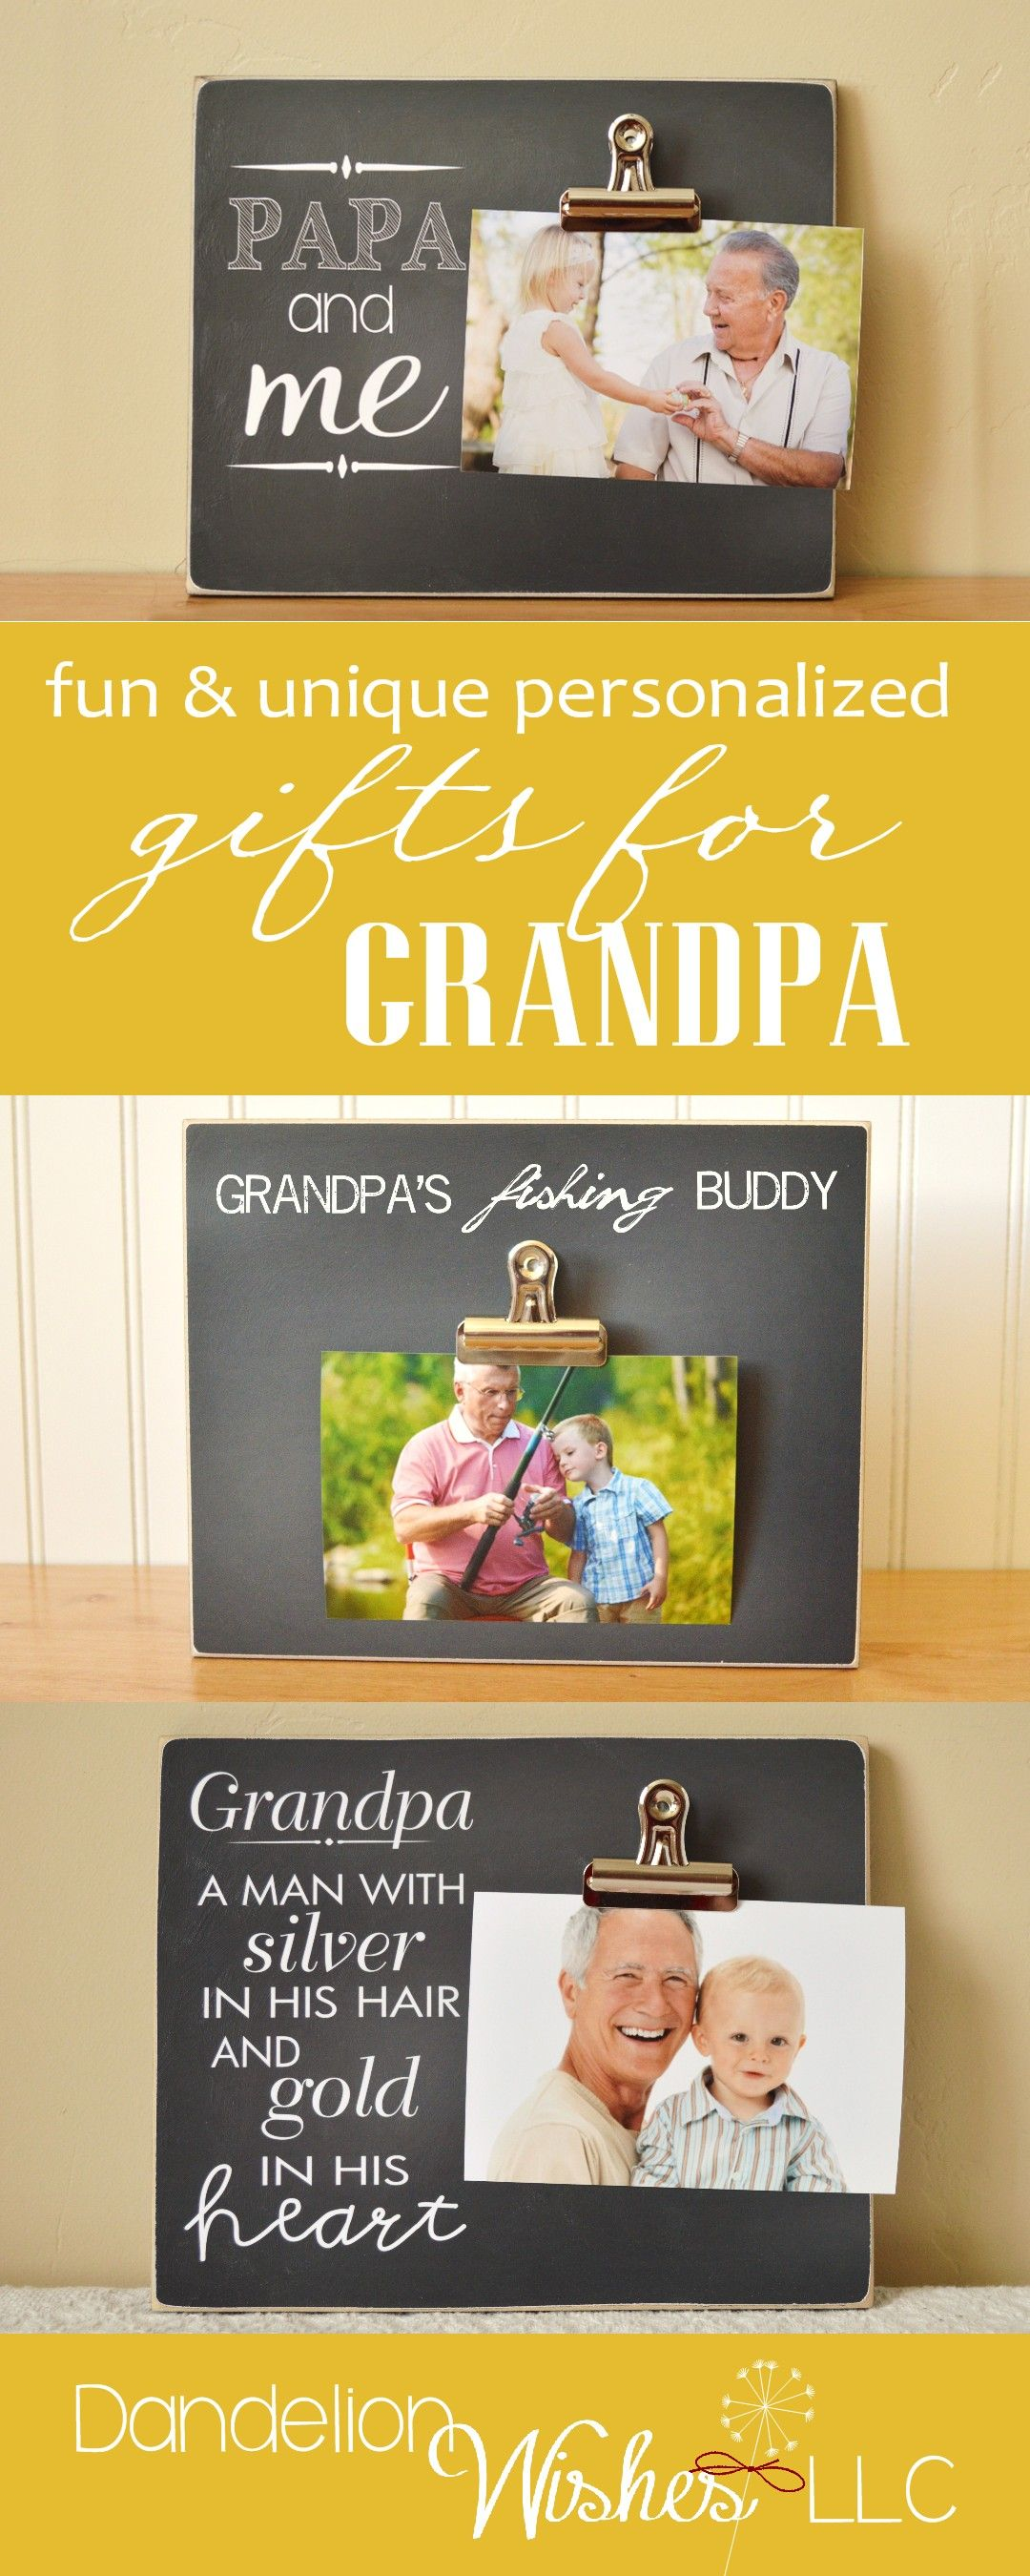 What to give to Grandpa for the New Year What to give to Grandma and Grandpa for the New Year 24